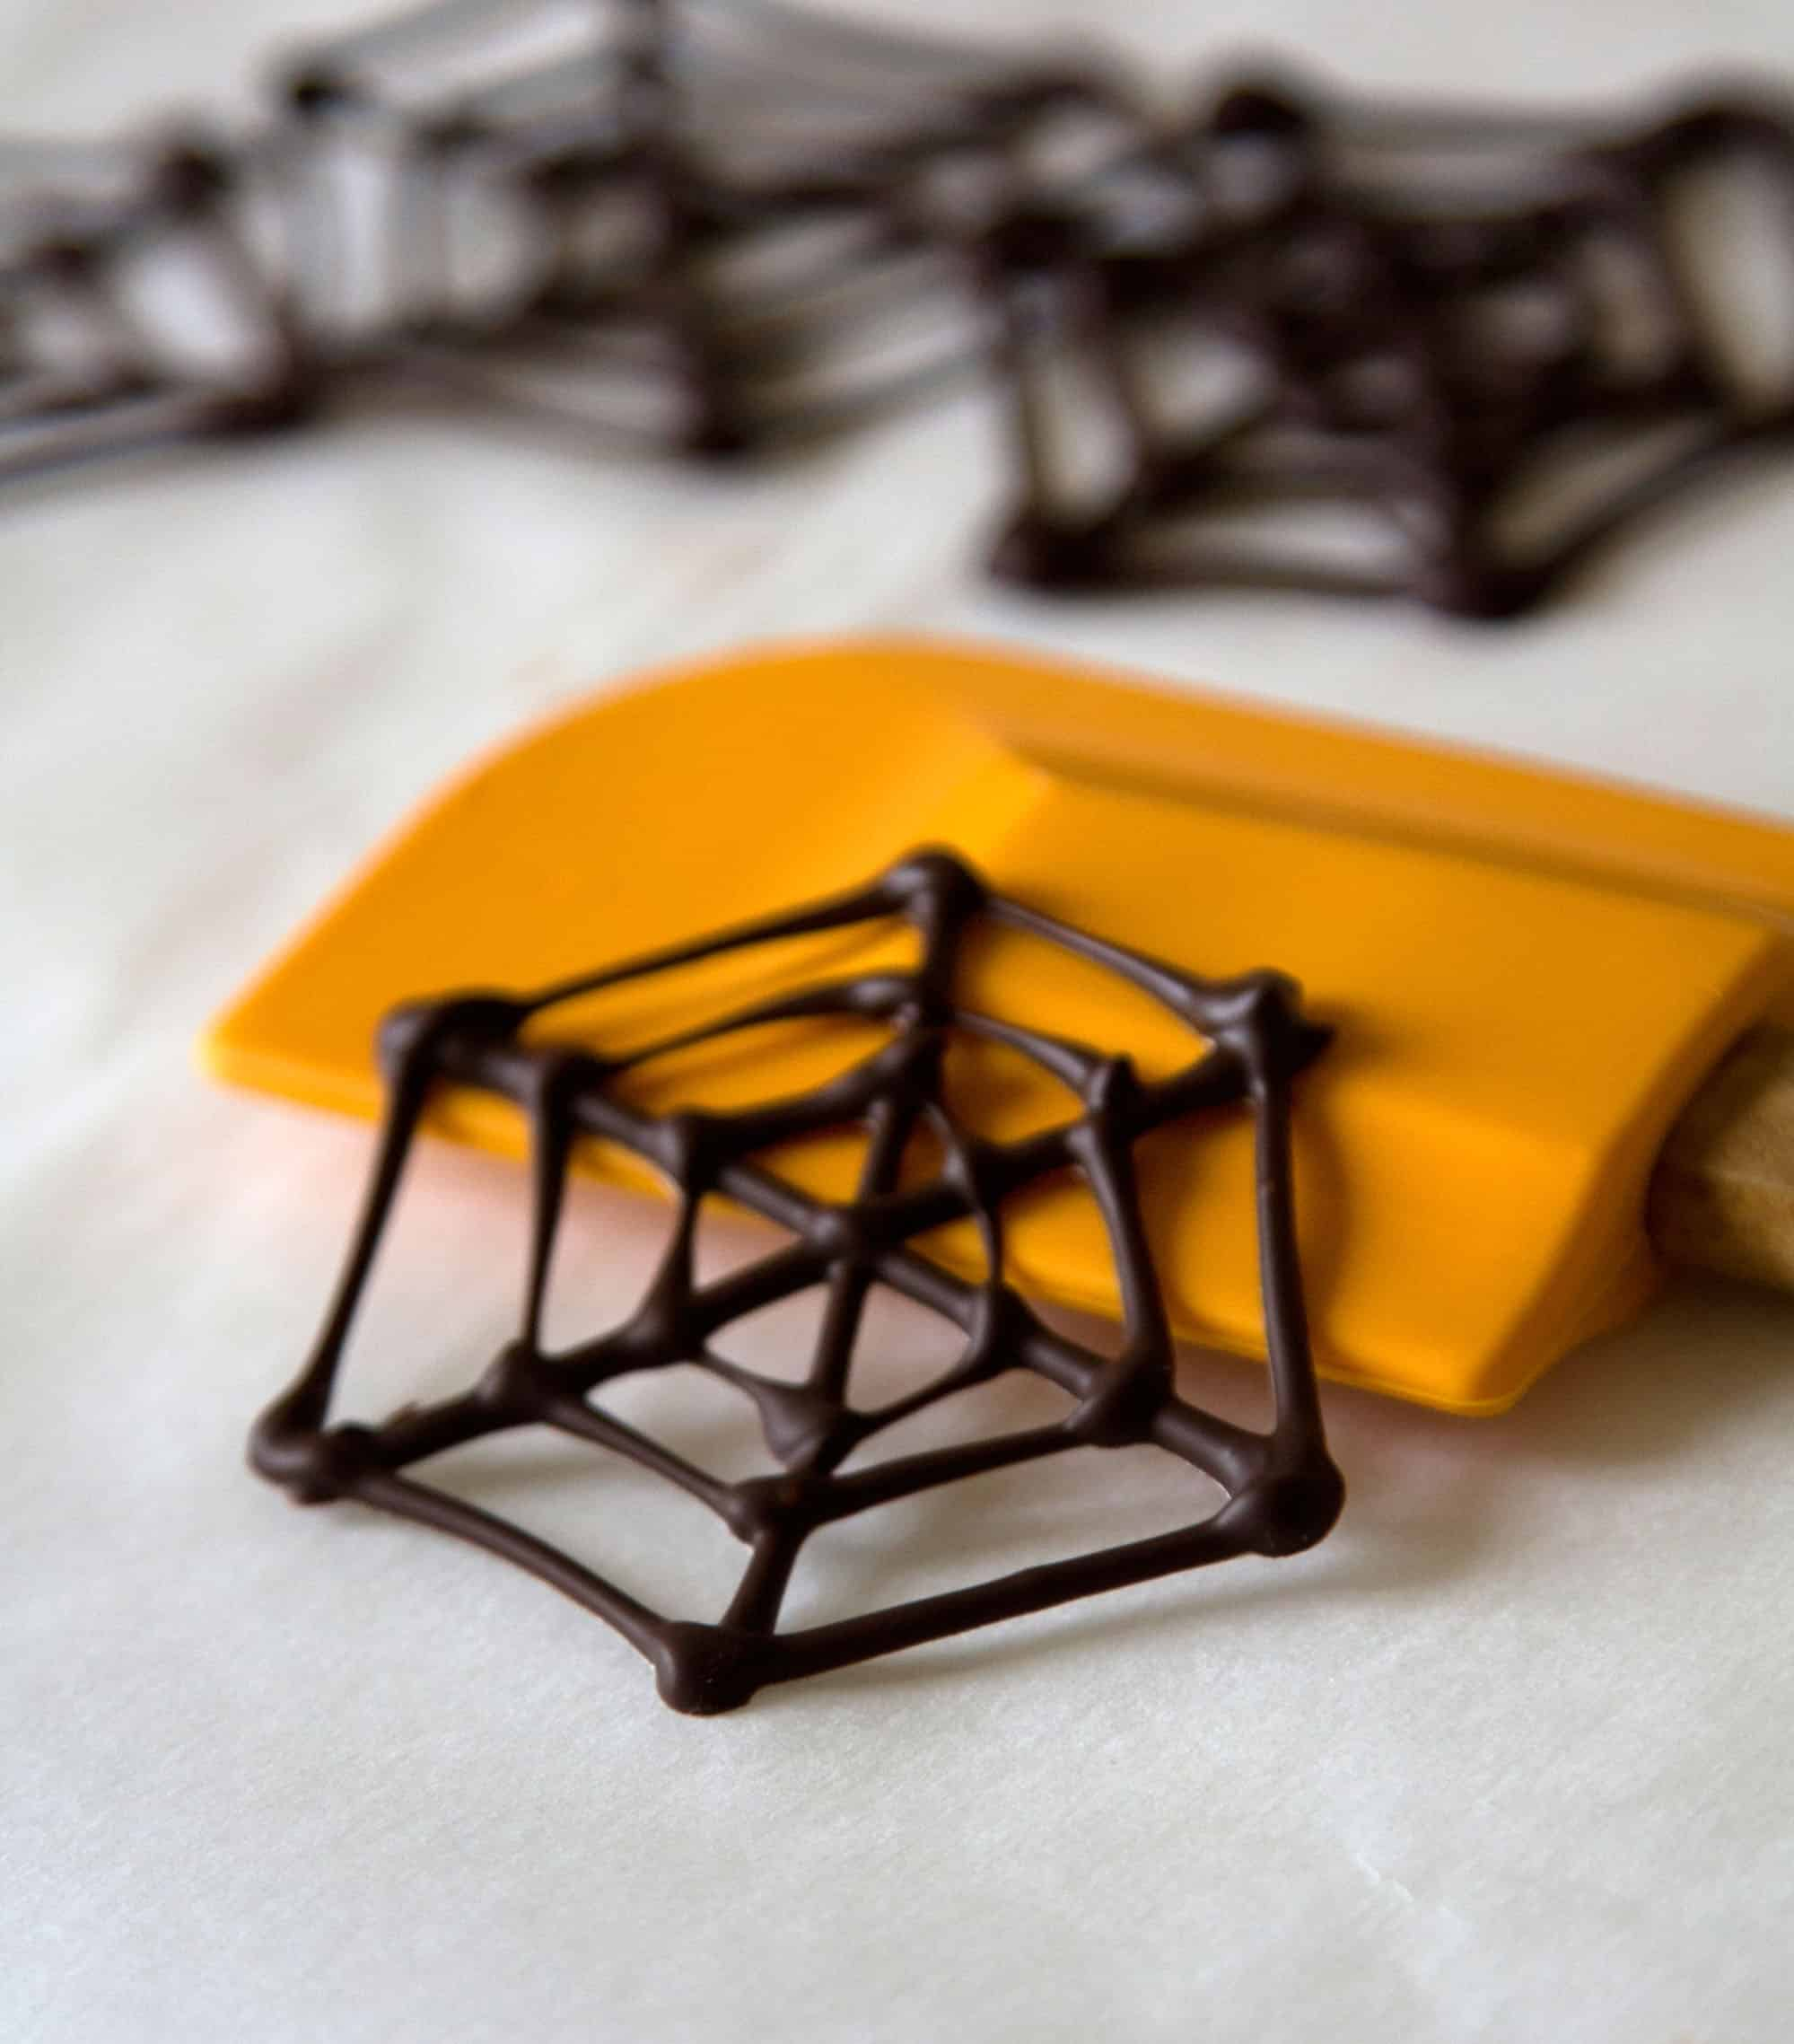 Chocolate spider webs